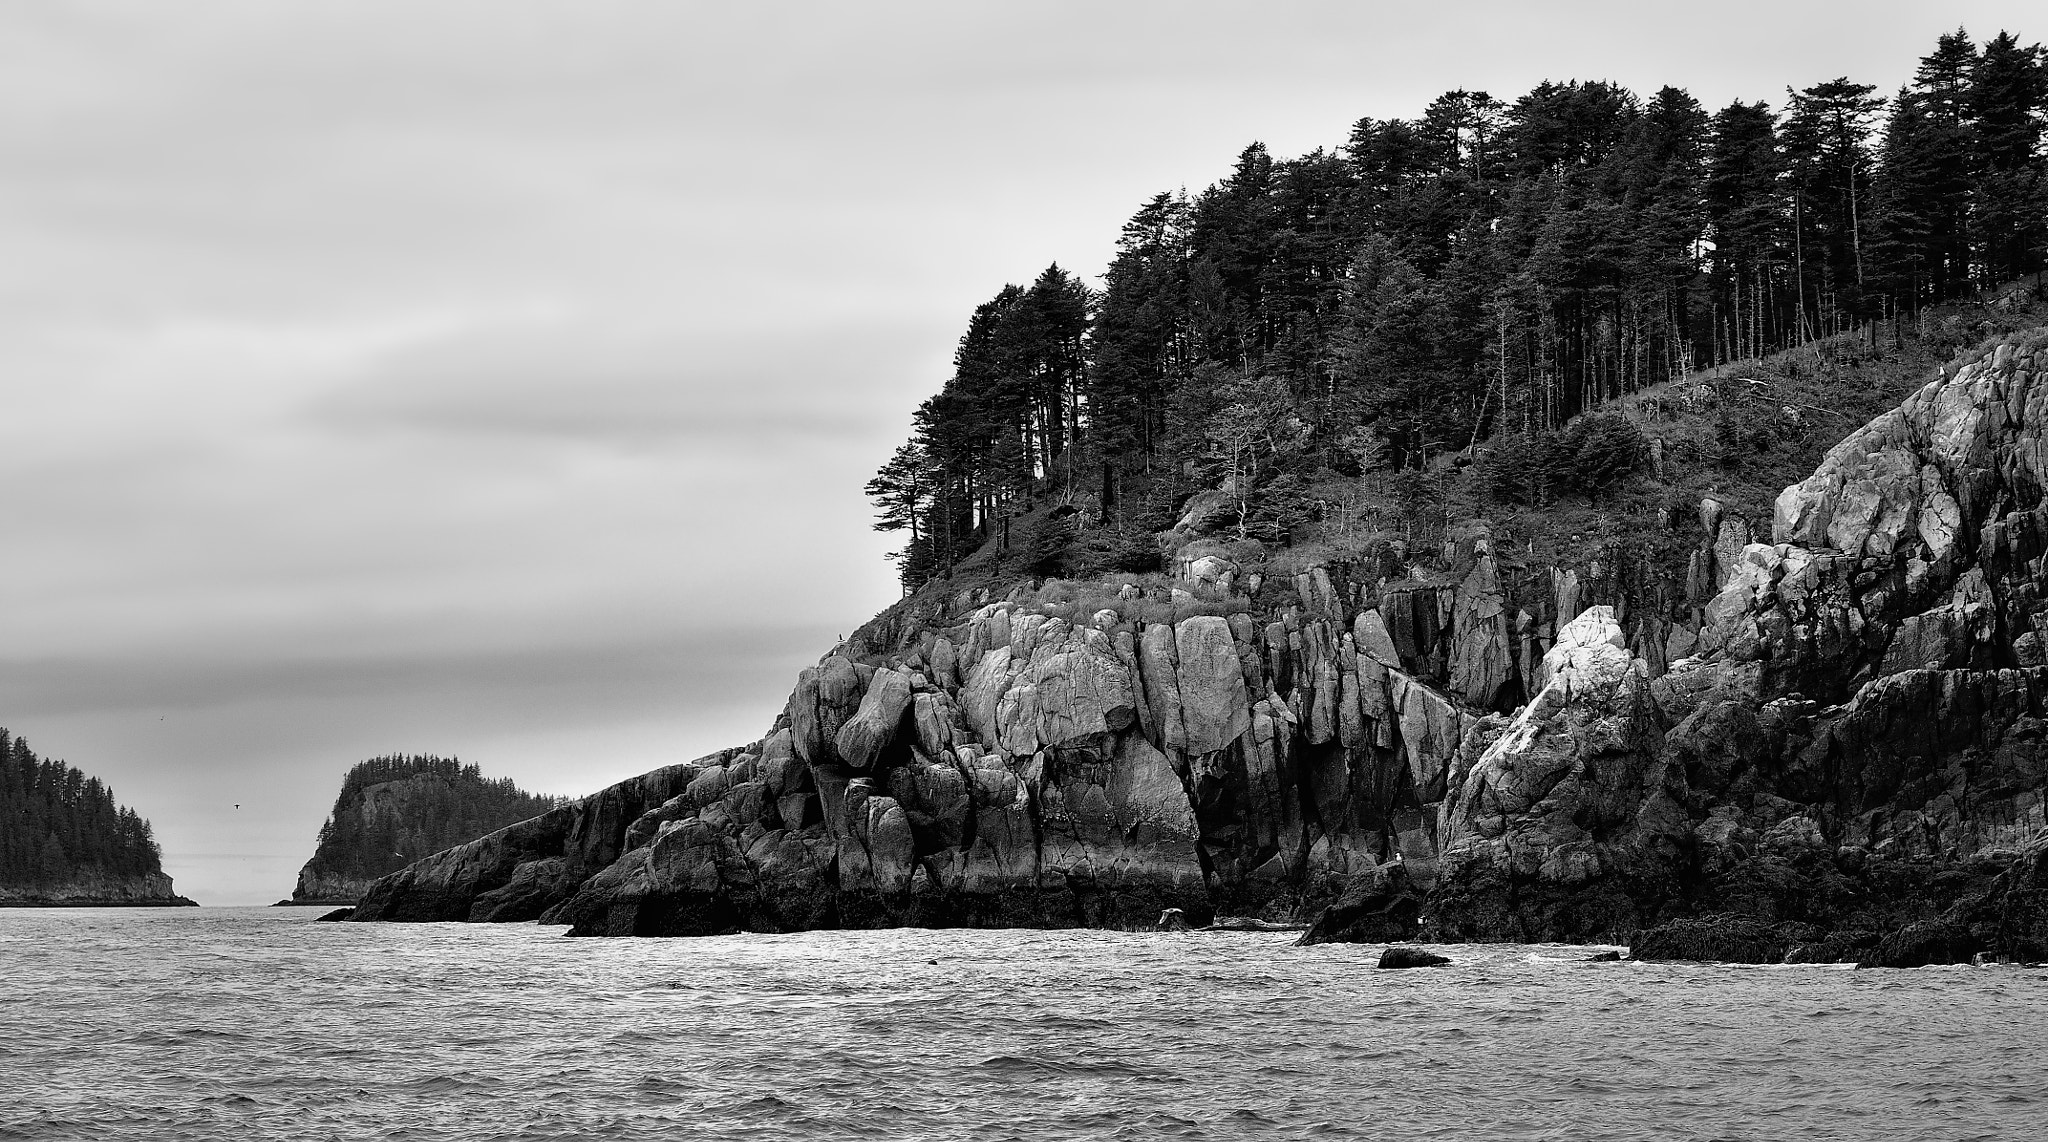 Photograph Black and White of the Alaskan Coastline by Mark Stevens on 500px